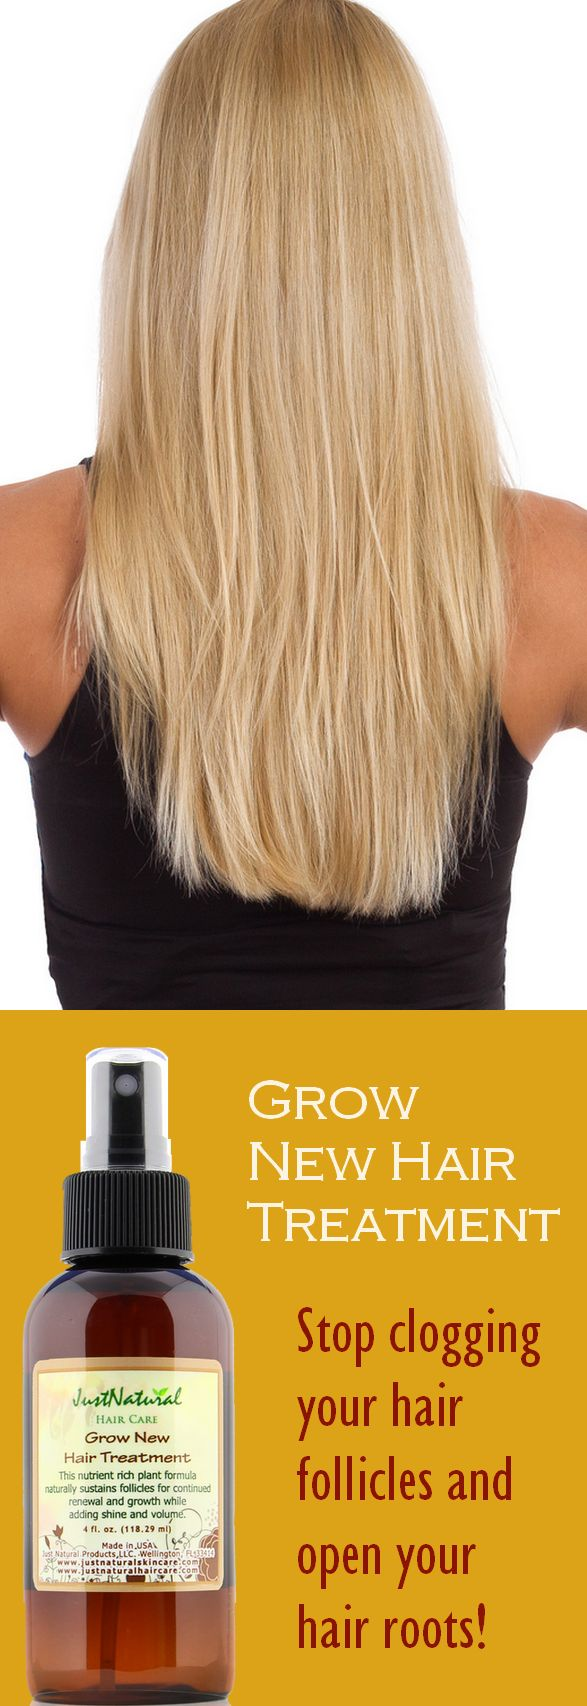 Grow New Hair Treatment / Encourage Your Hair to Grow Faster, Longer  and Fuller with Less Breakage